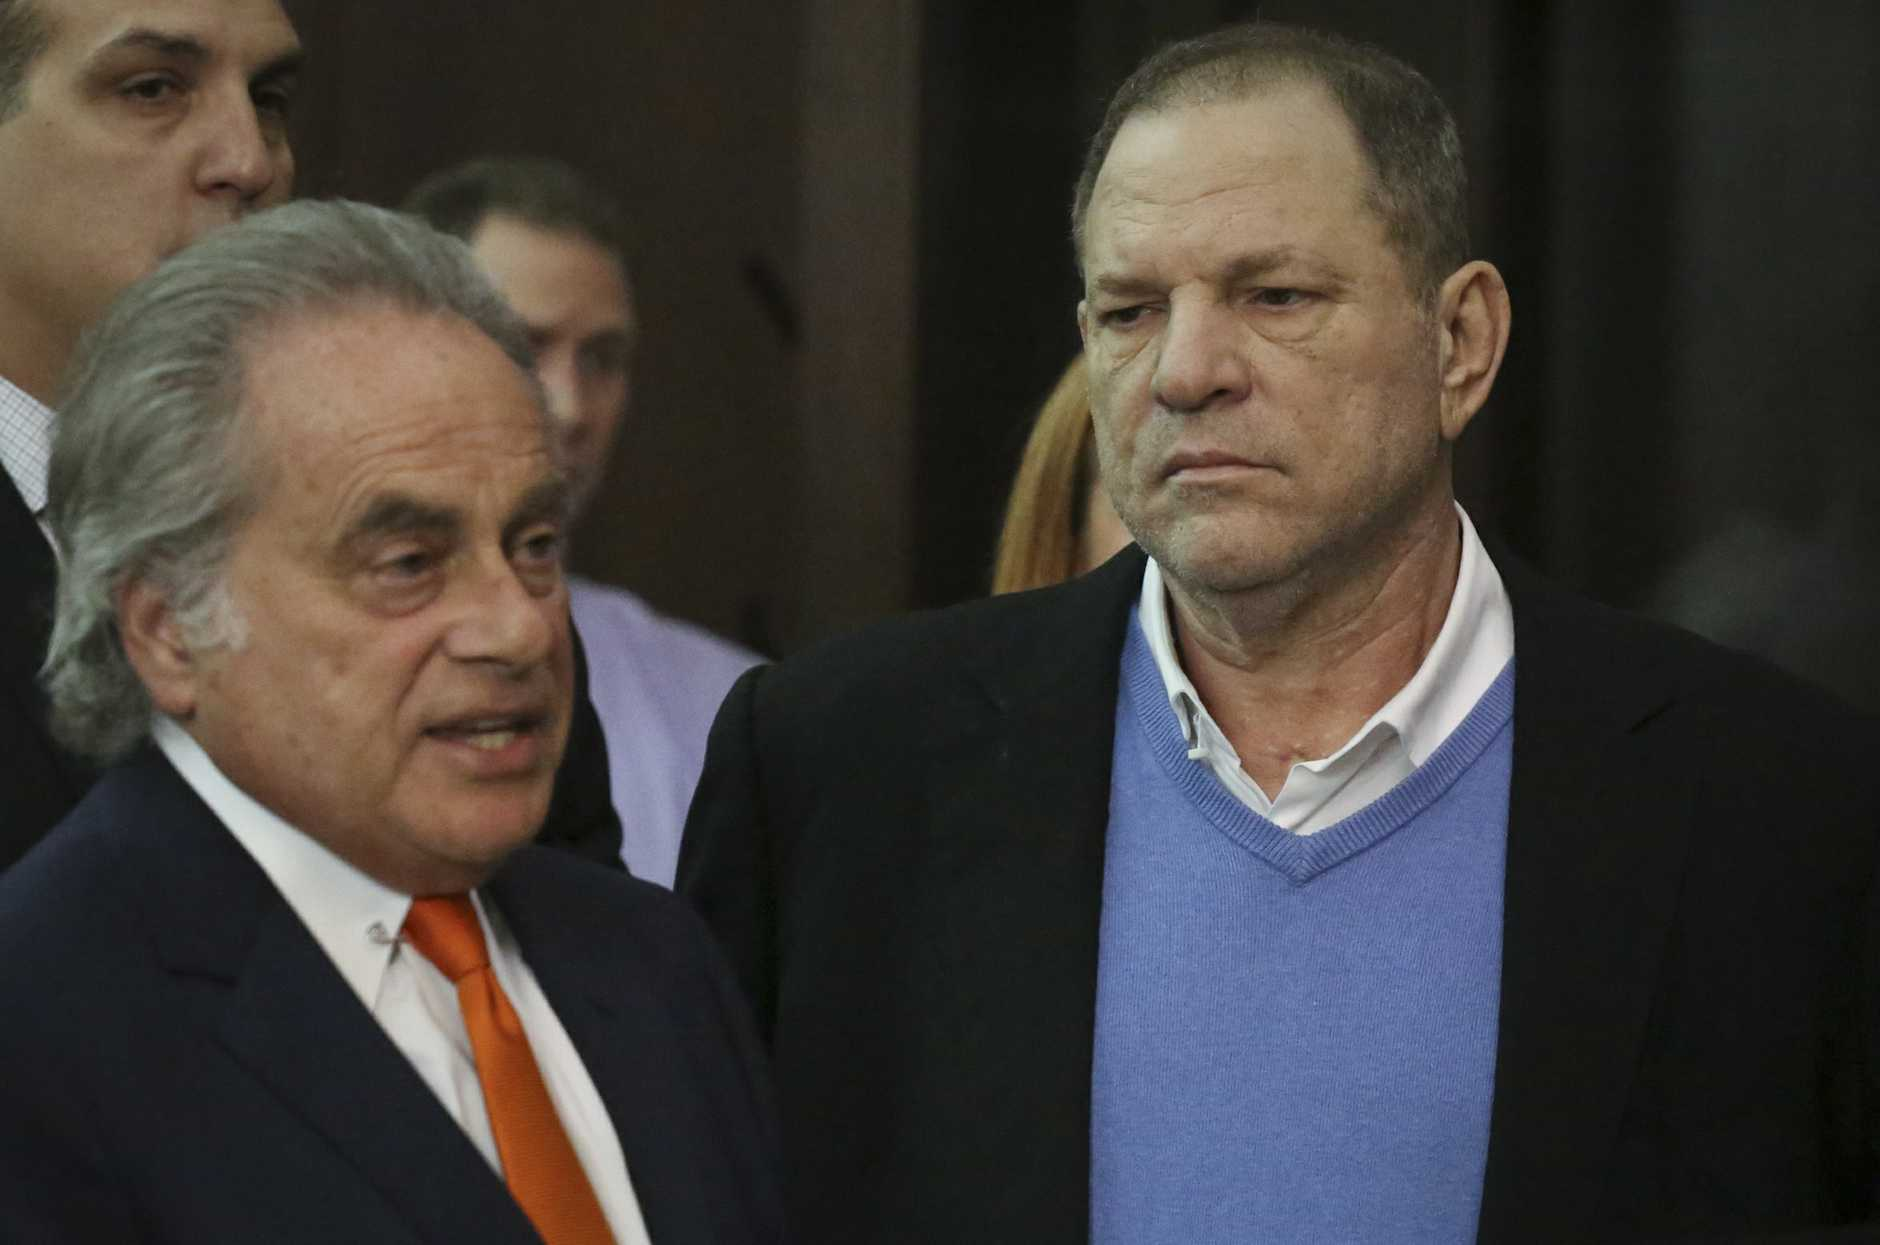 Harvey Weinstein, right, appears at his arraignment with his lawyer Benjamin Brafman, in a New York criminal court on Friday, May 25, 2018. Weinstein is charged with two counts of rape and one count of criminal sexual act. He was released on one million dollars bail.